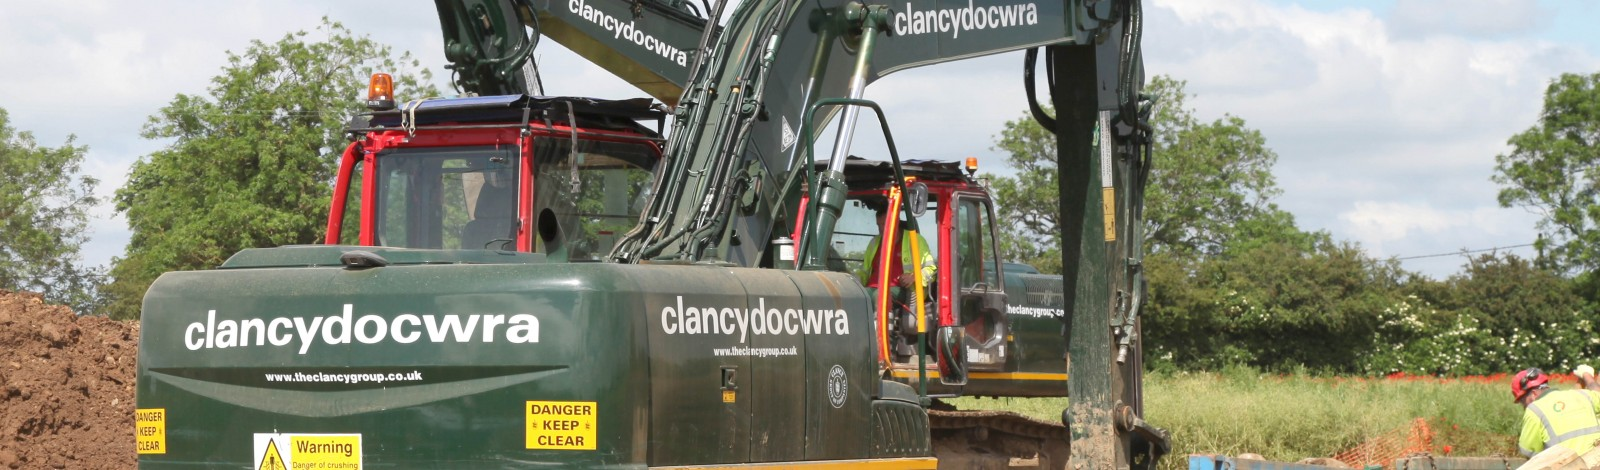 A67 Carlbury Main Diversion – replacement of 1km of 800mm diameter ductile iron (DI) pipes - Clancy Docwra